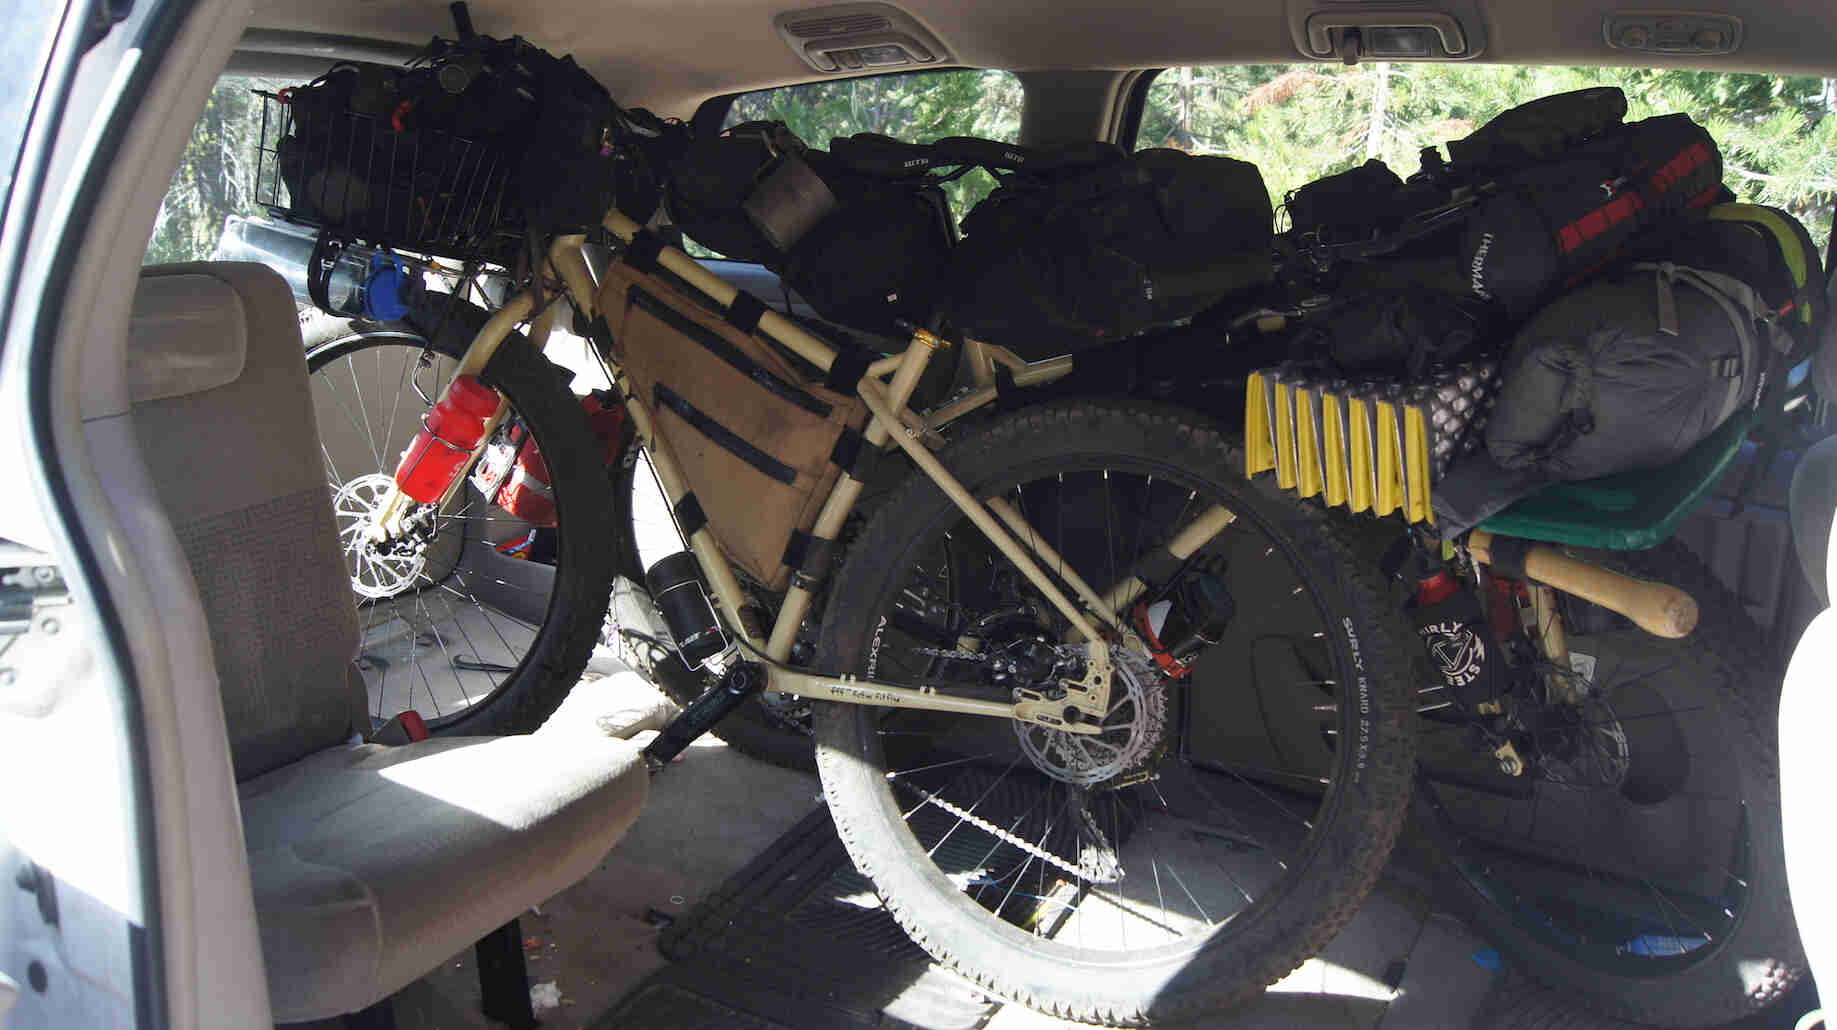 Left side view of a Surly bike, inside of a minivan with camping gear